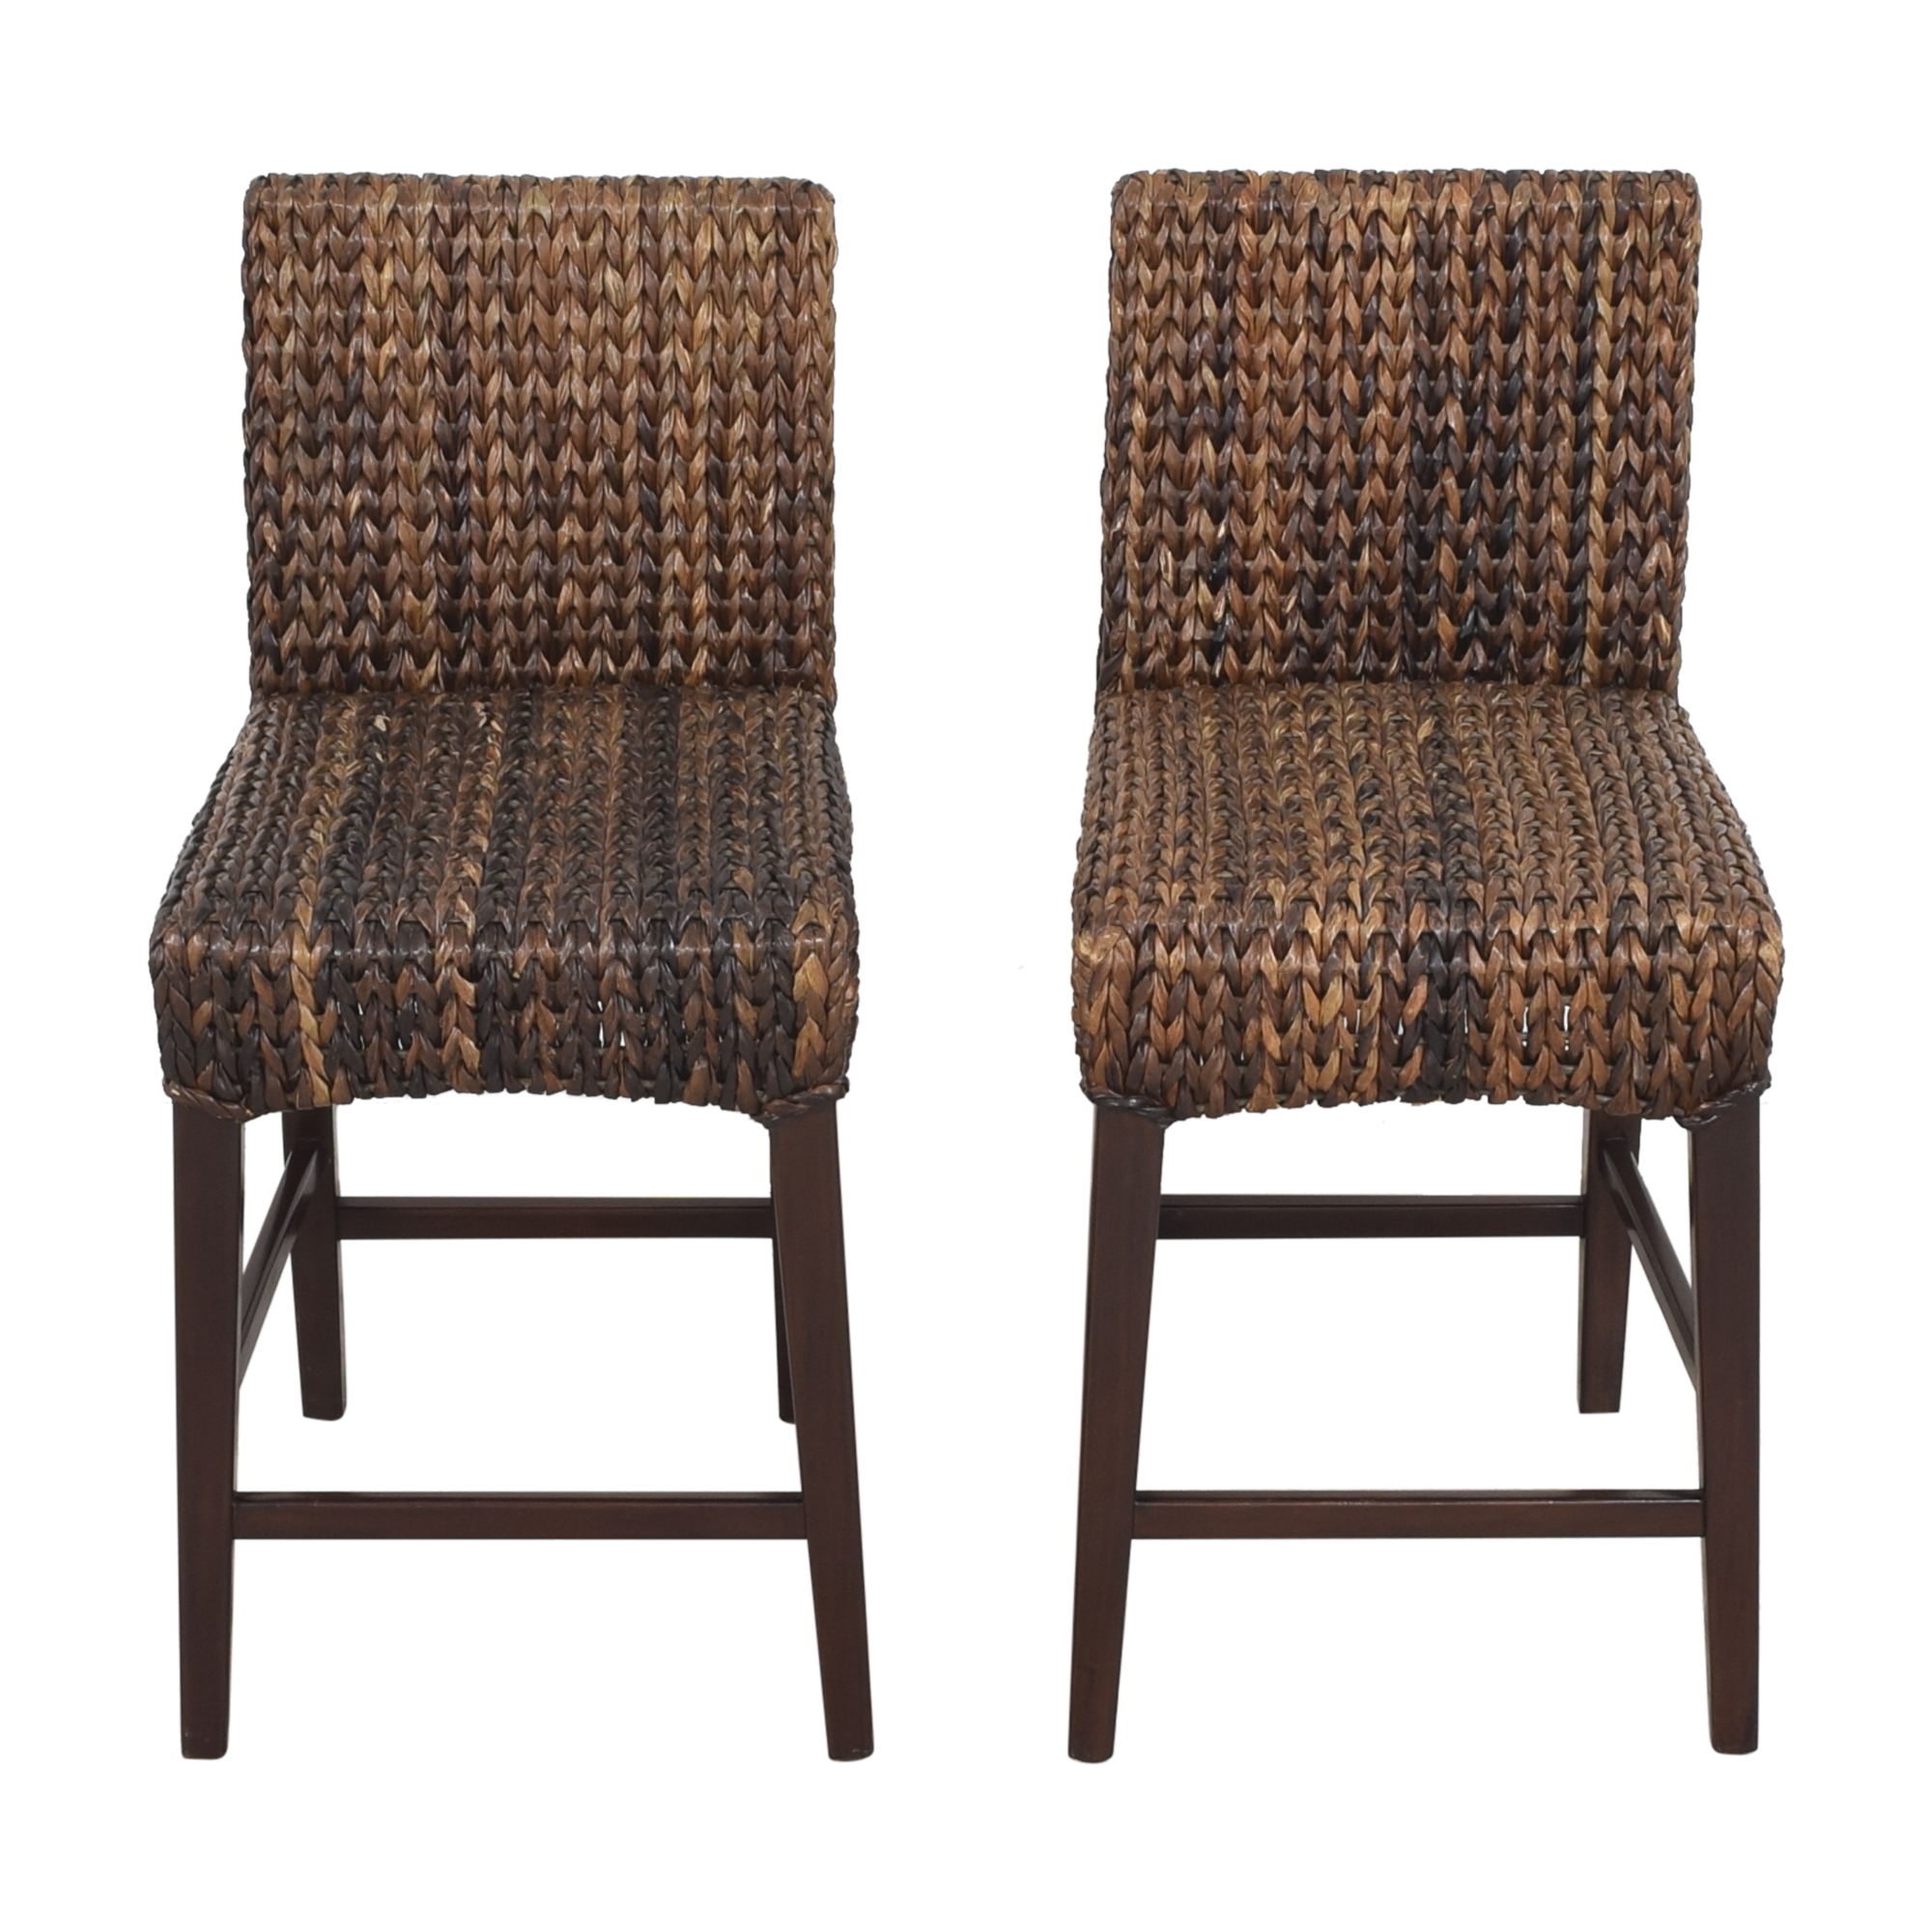 shop Pottery Barn Pottery Barn Seagrass Counter Stools online